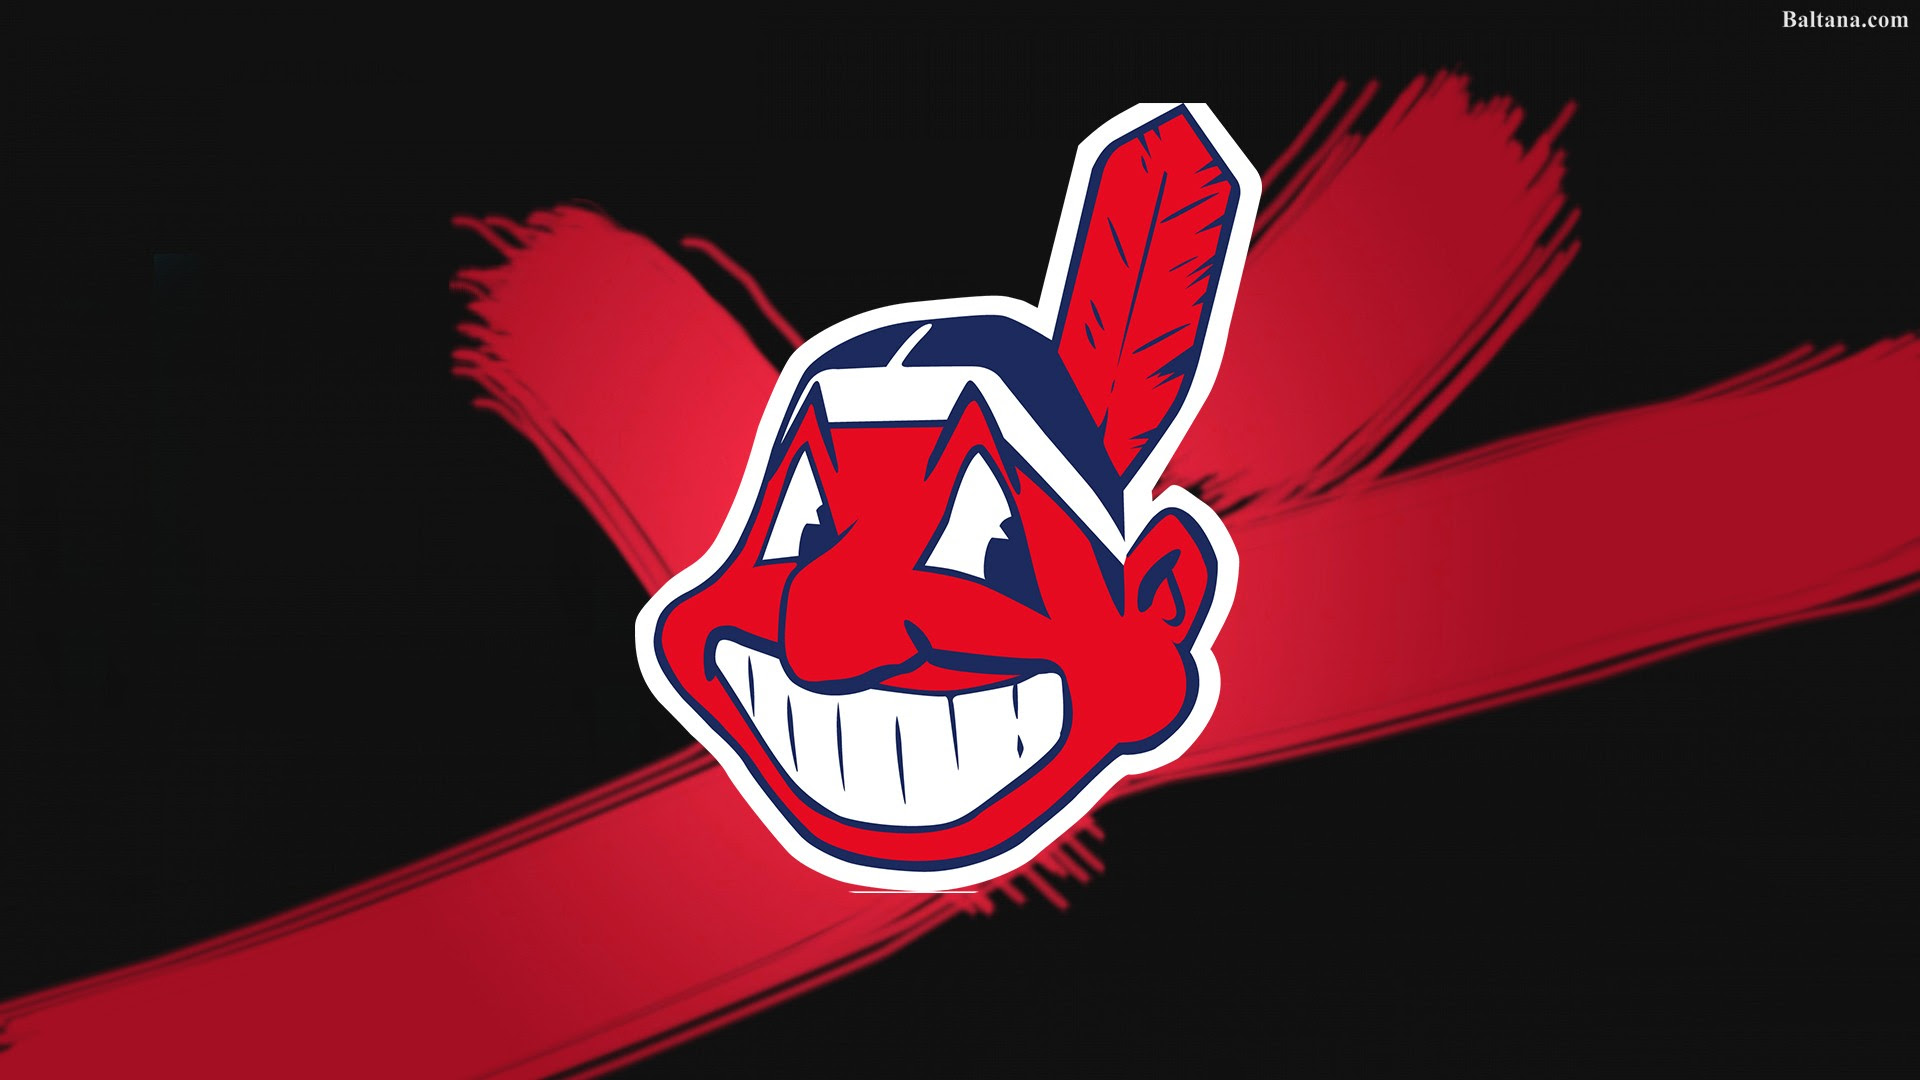 Cleveland Indians Wallpaper 2019 - New Wallpapers